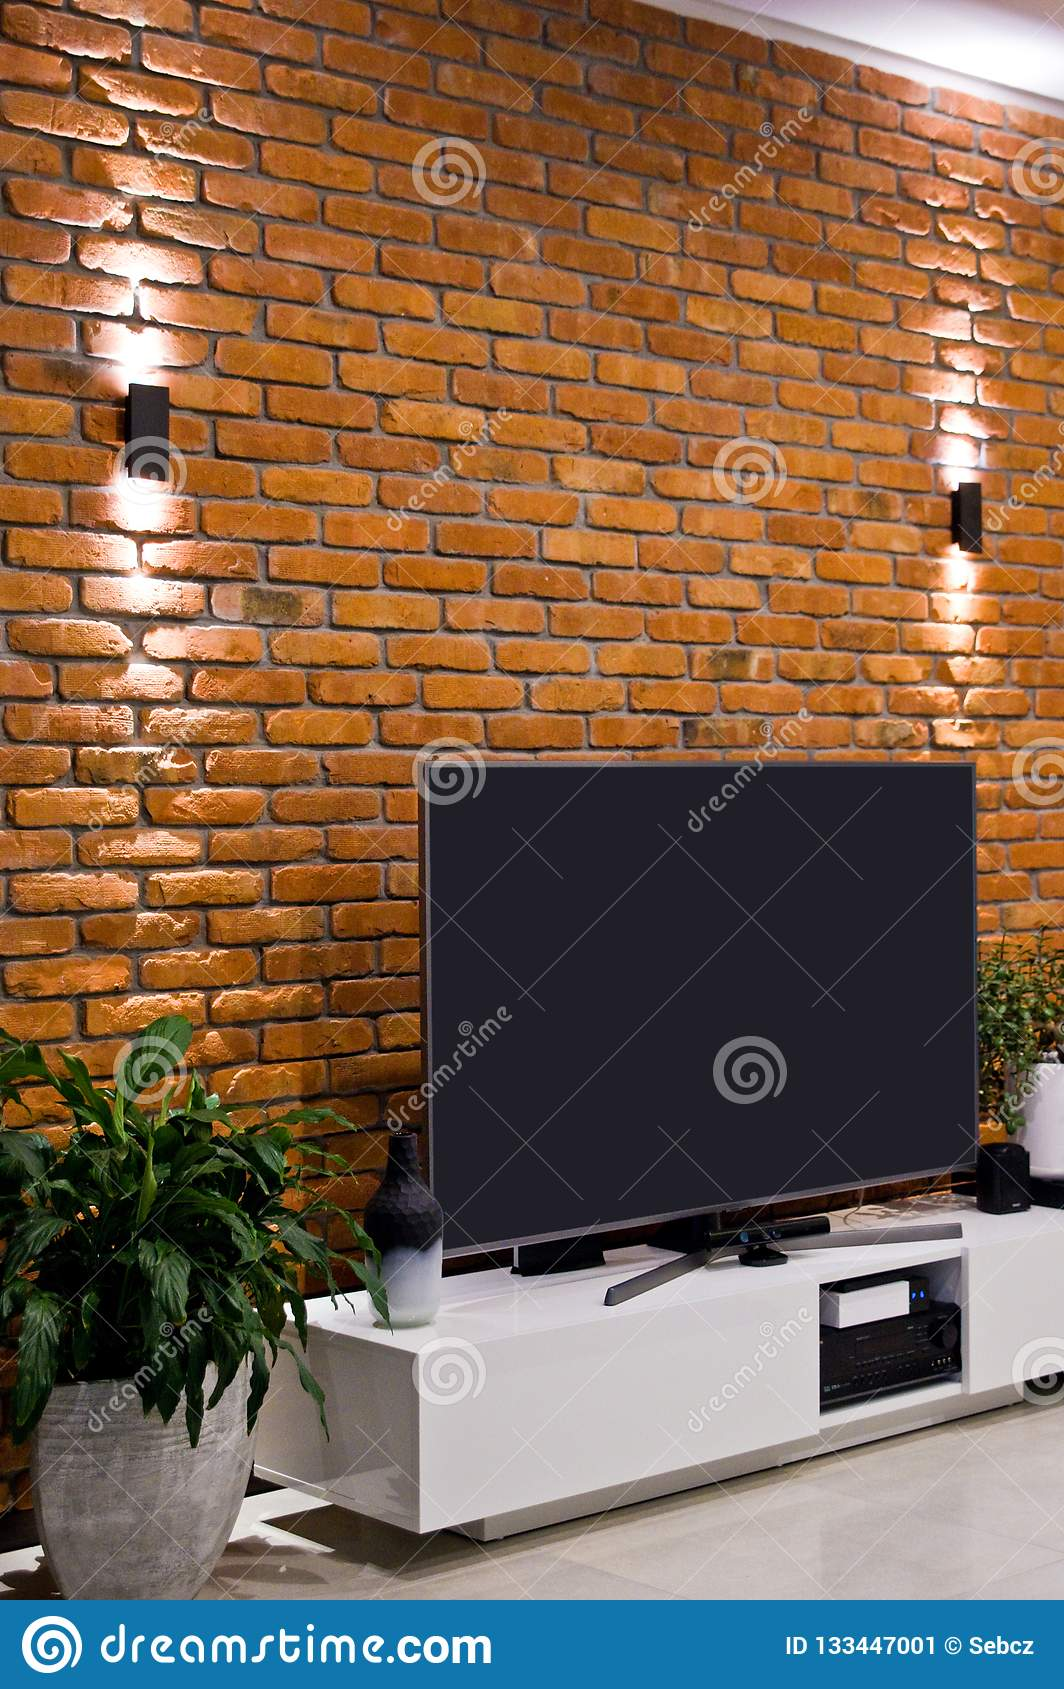 Modern Home Room Design With Red Brick Wall And Flat Led Television Stock Image Image Of Concept Architecture 133447001